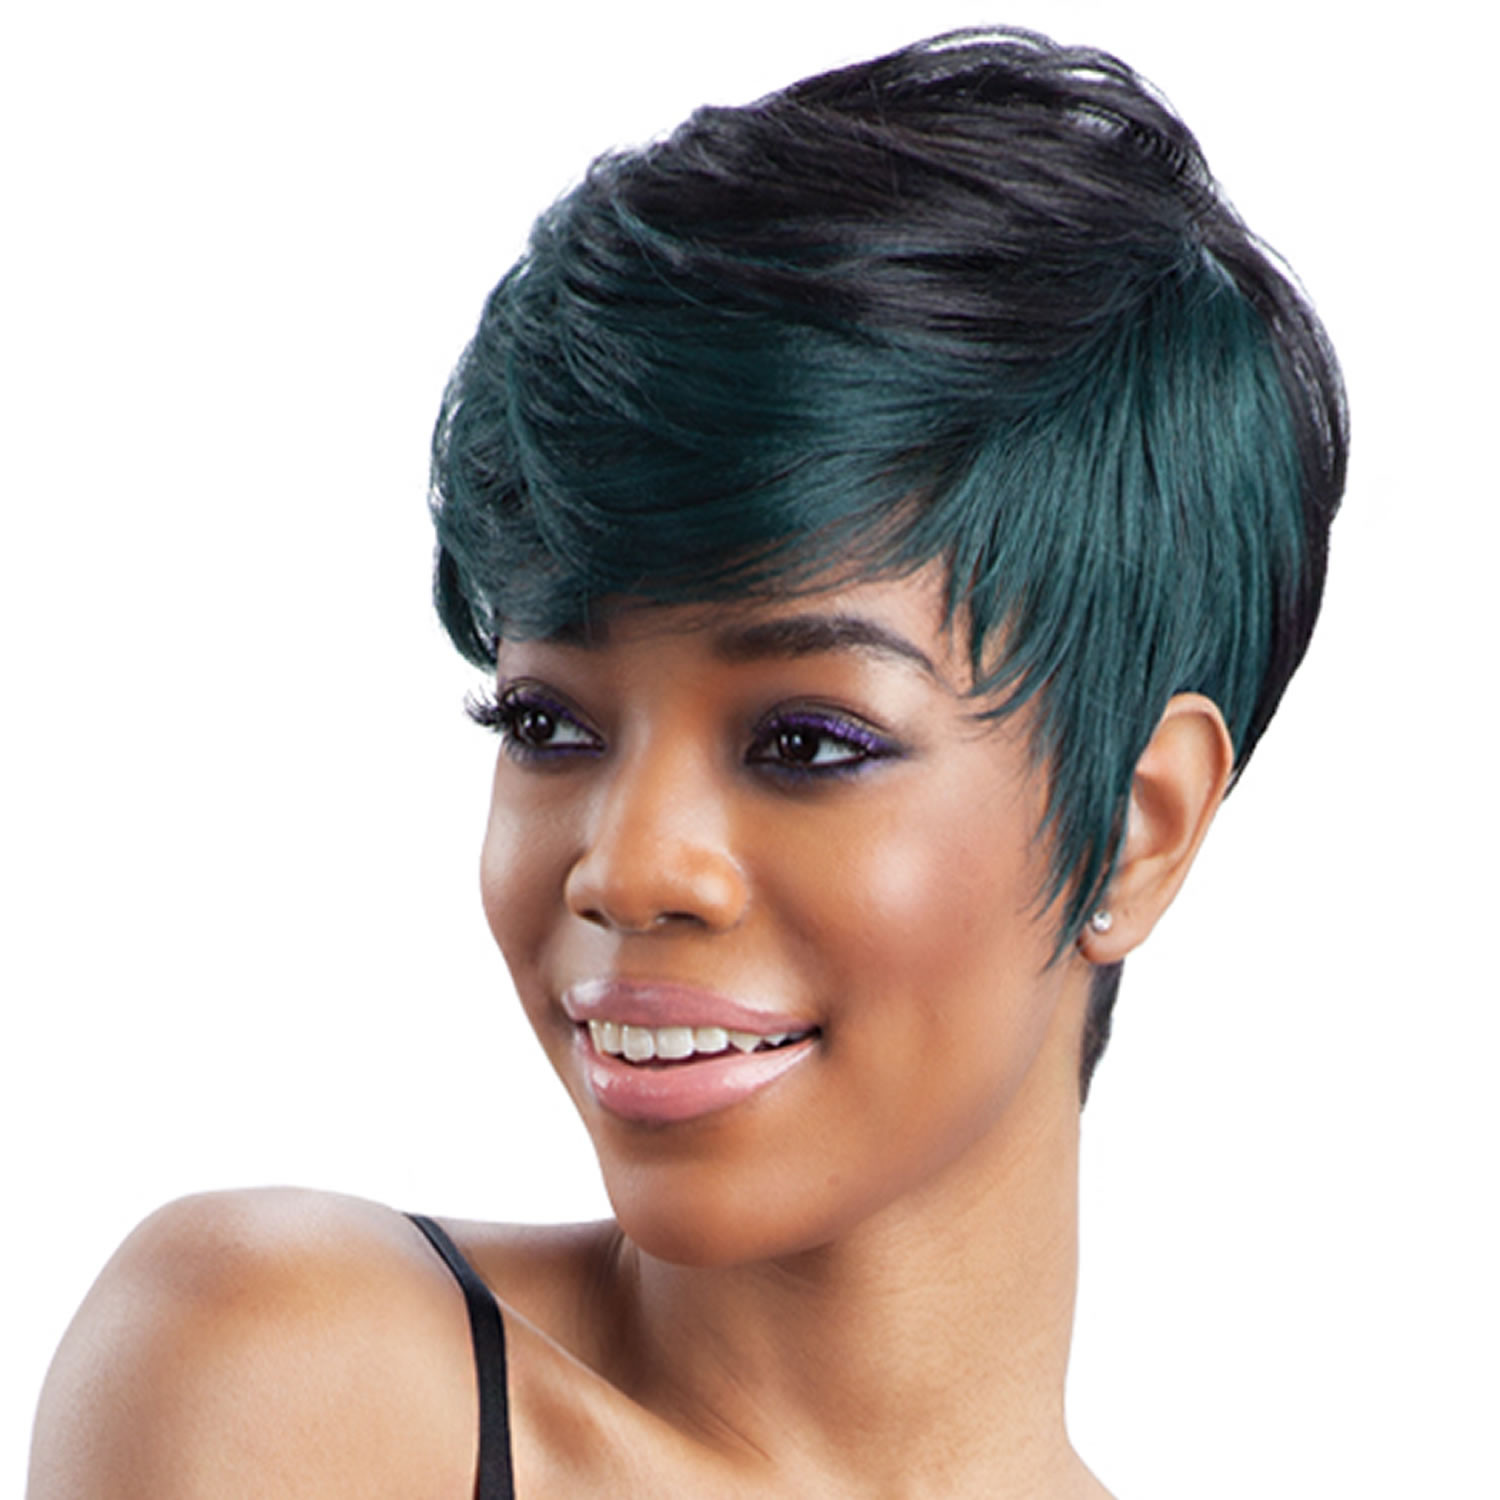 Hairstyles Black Women  2018 Short Haircuts for Black Women – 57 Pixie Short Black